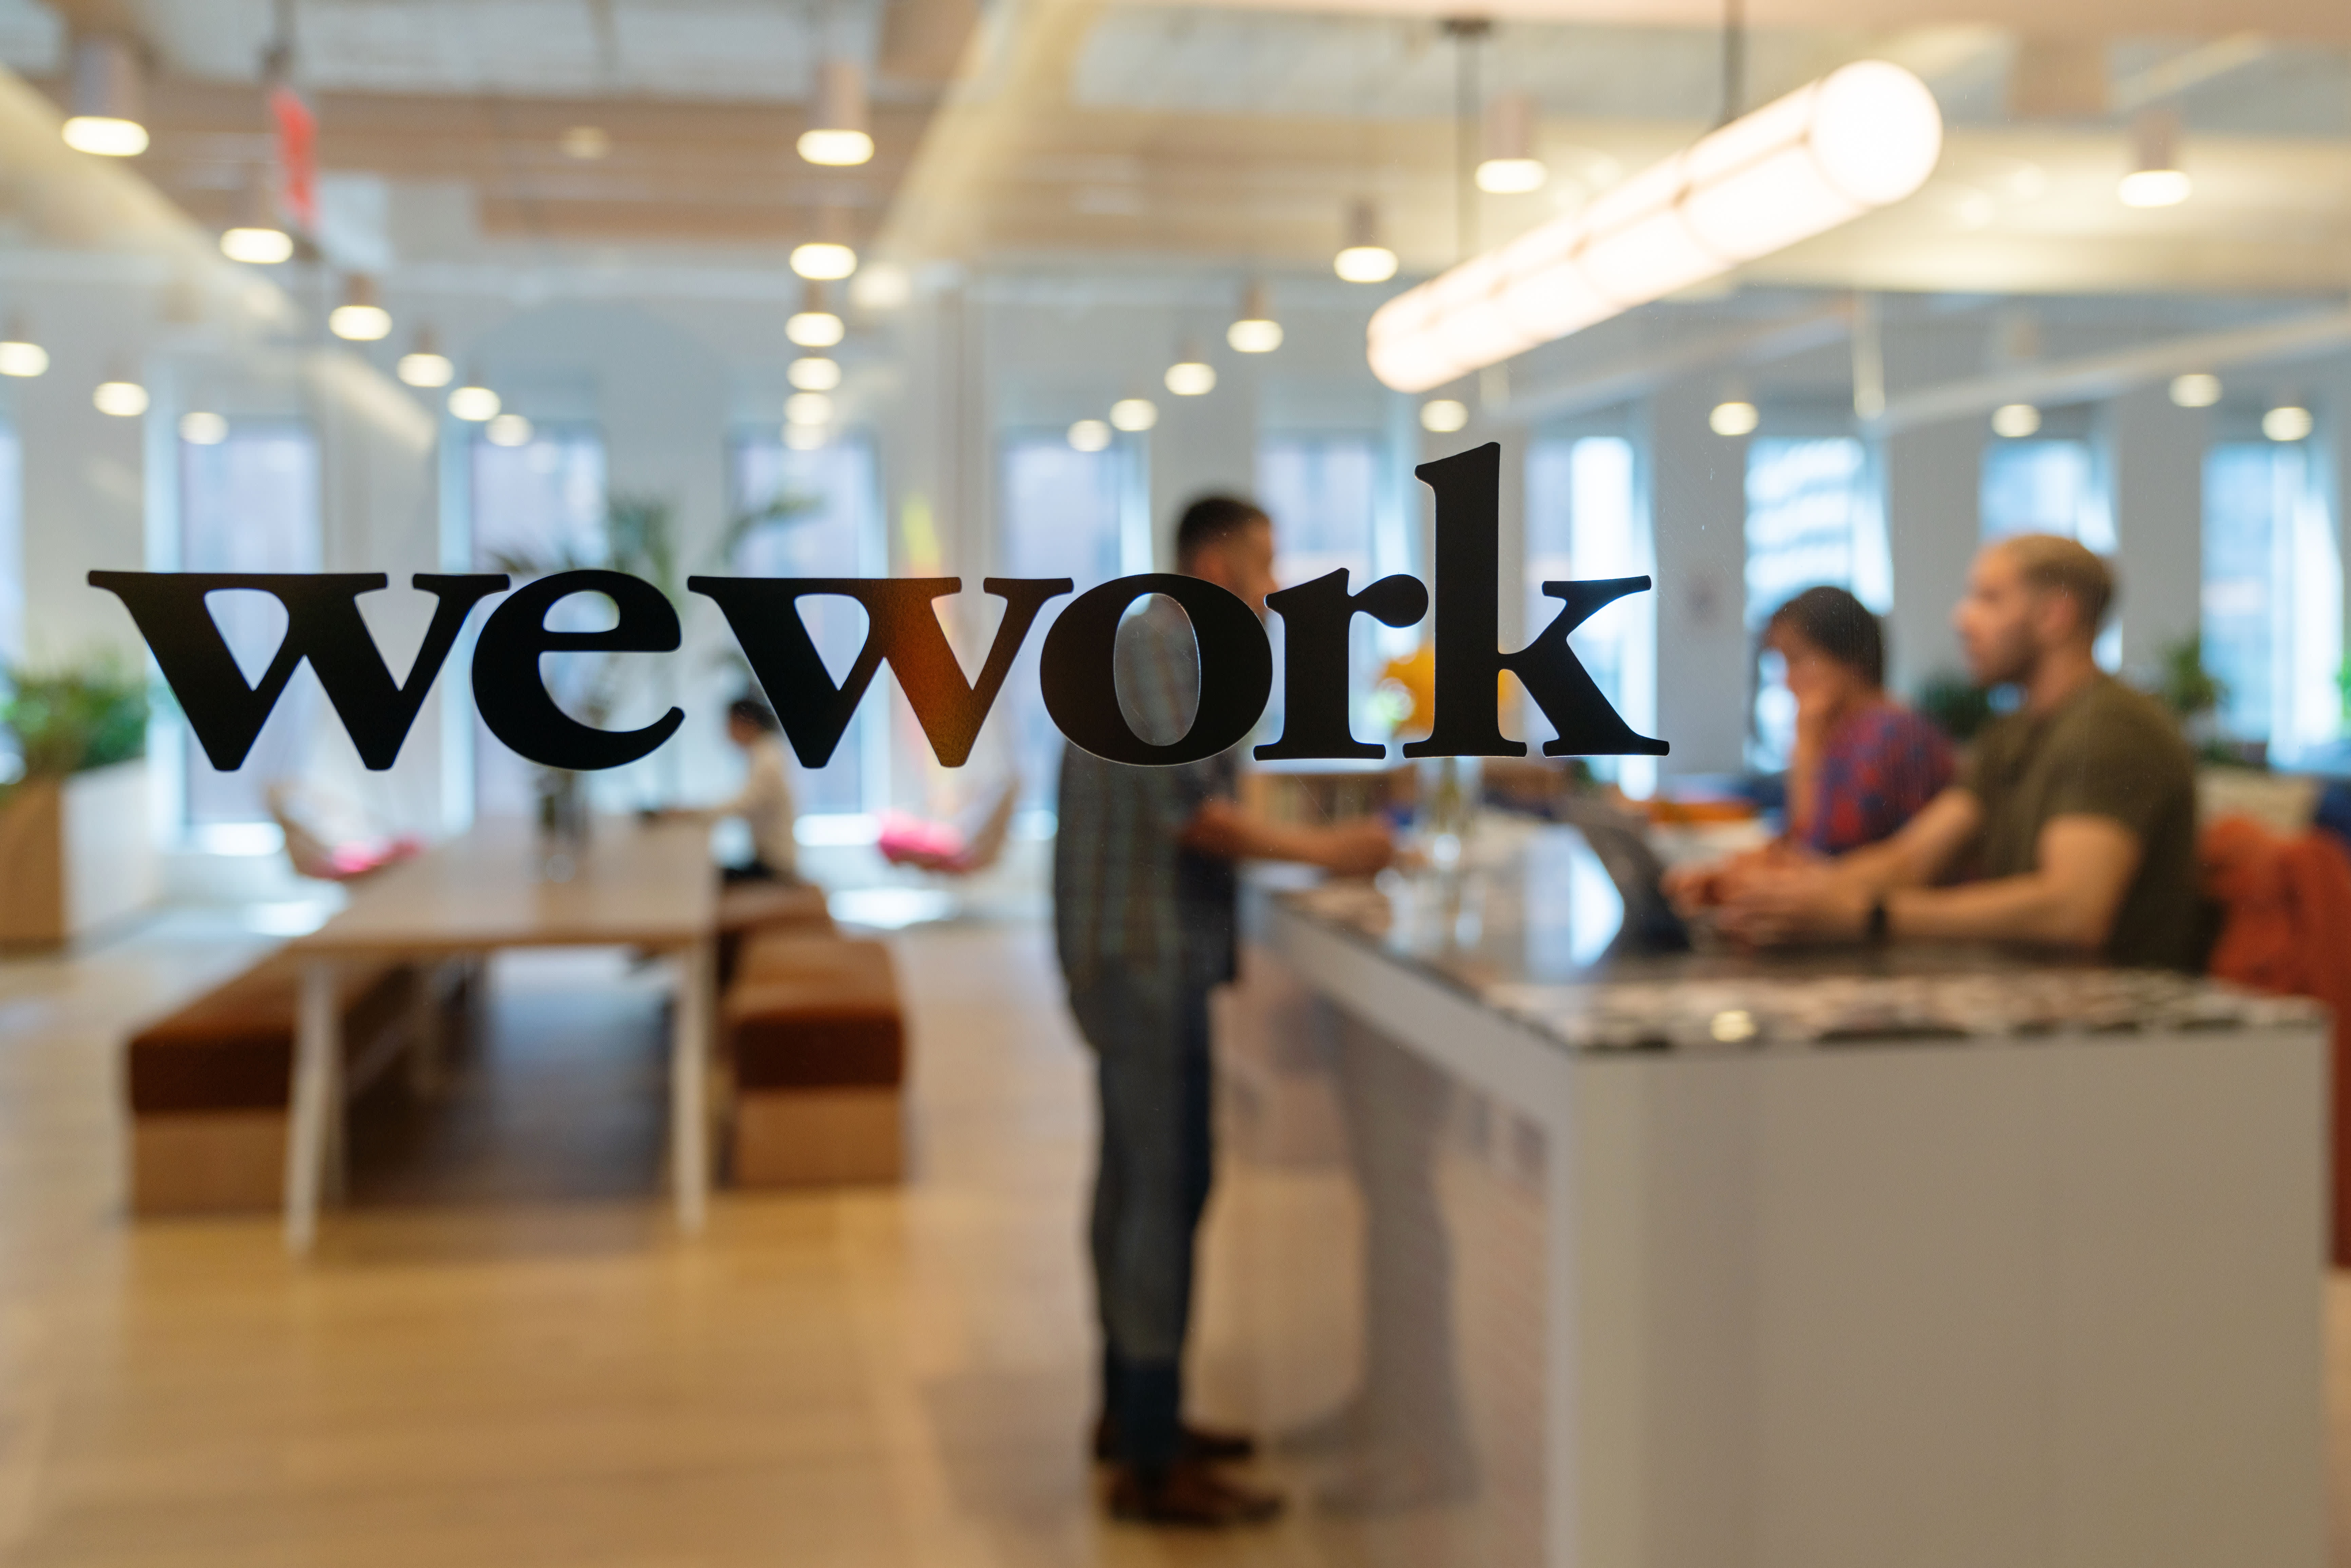 WeWork will host a Wall Street analyst day in IPO push